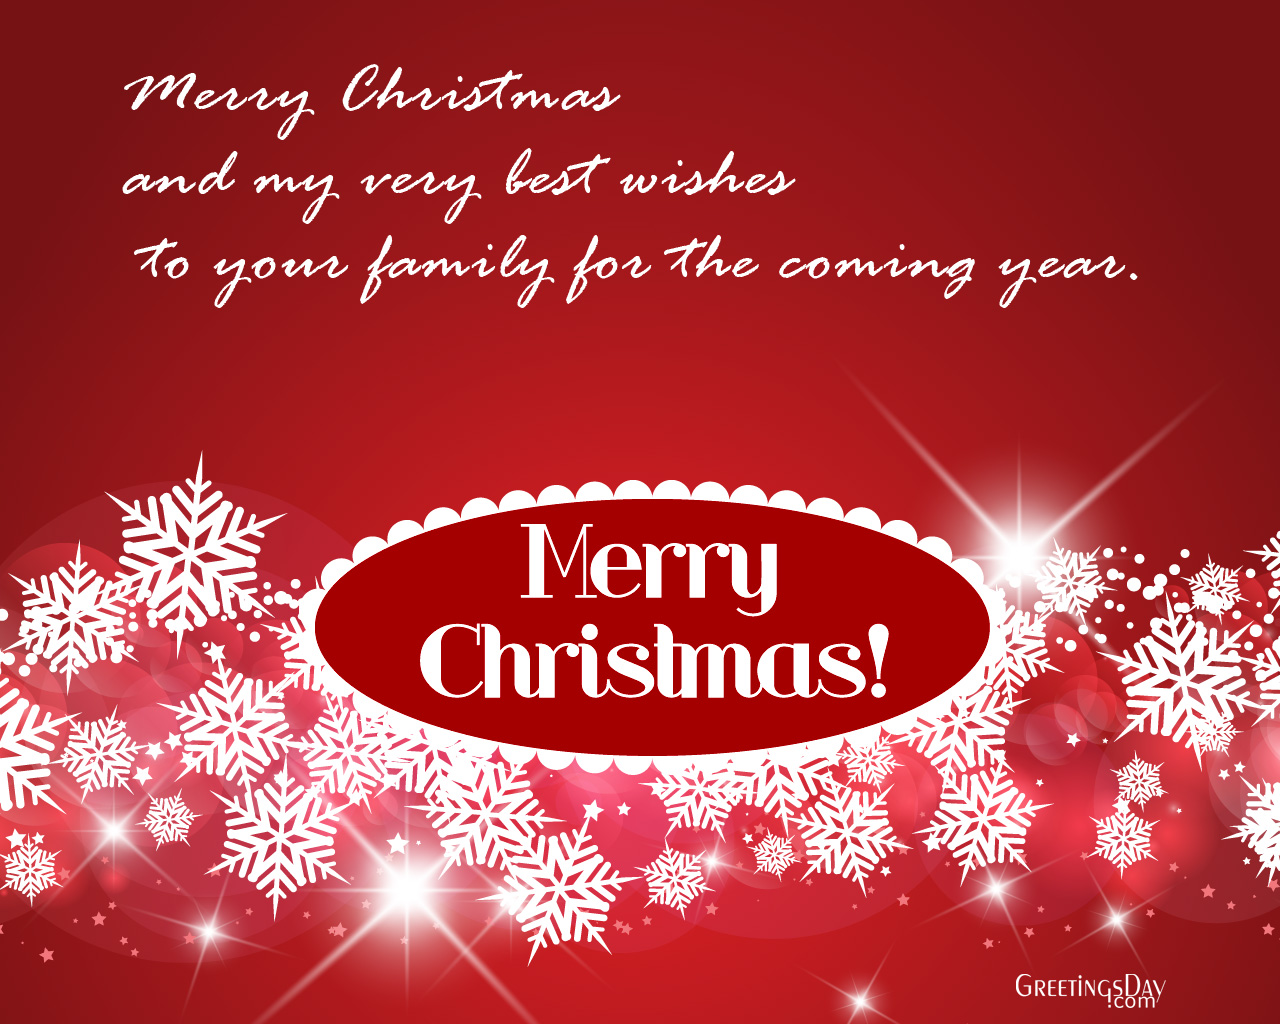 20 christmas greeting cards wishes for facebook friends merry i am sending my christmas wishes to you all i hope you have a happy time with friends and family fun christmas card m4hsunfo